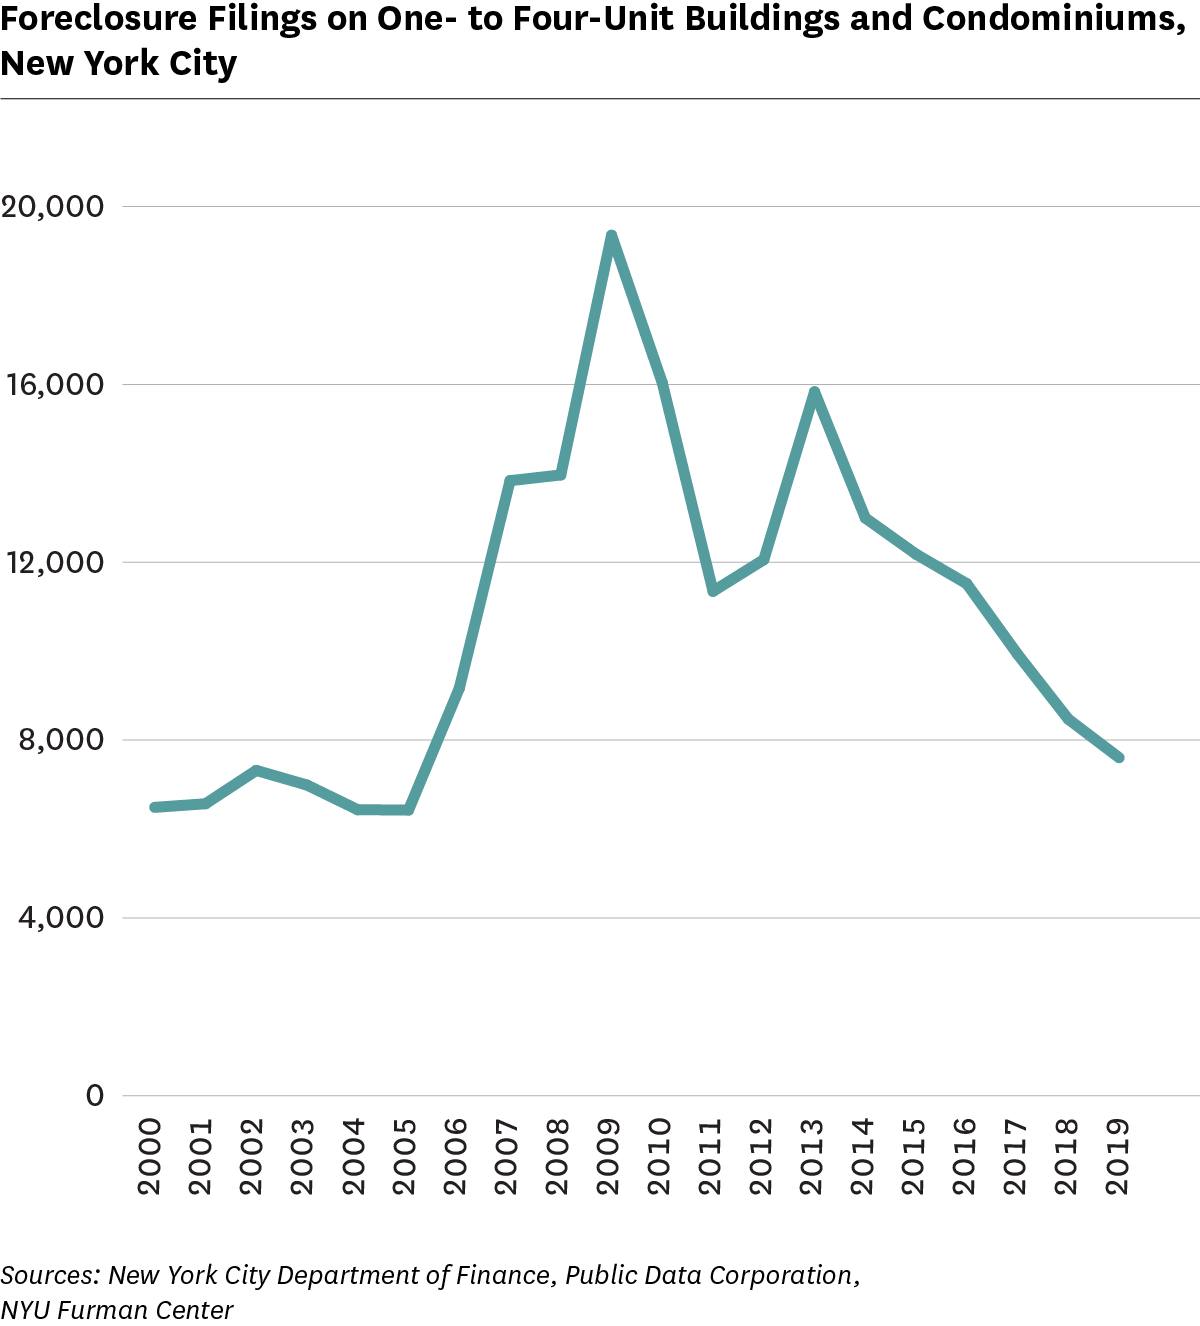 Line graph showing Foreclosure Filings on One- to Four-Unit Buildings and Condominiums, 2000 to 2019